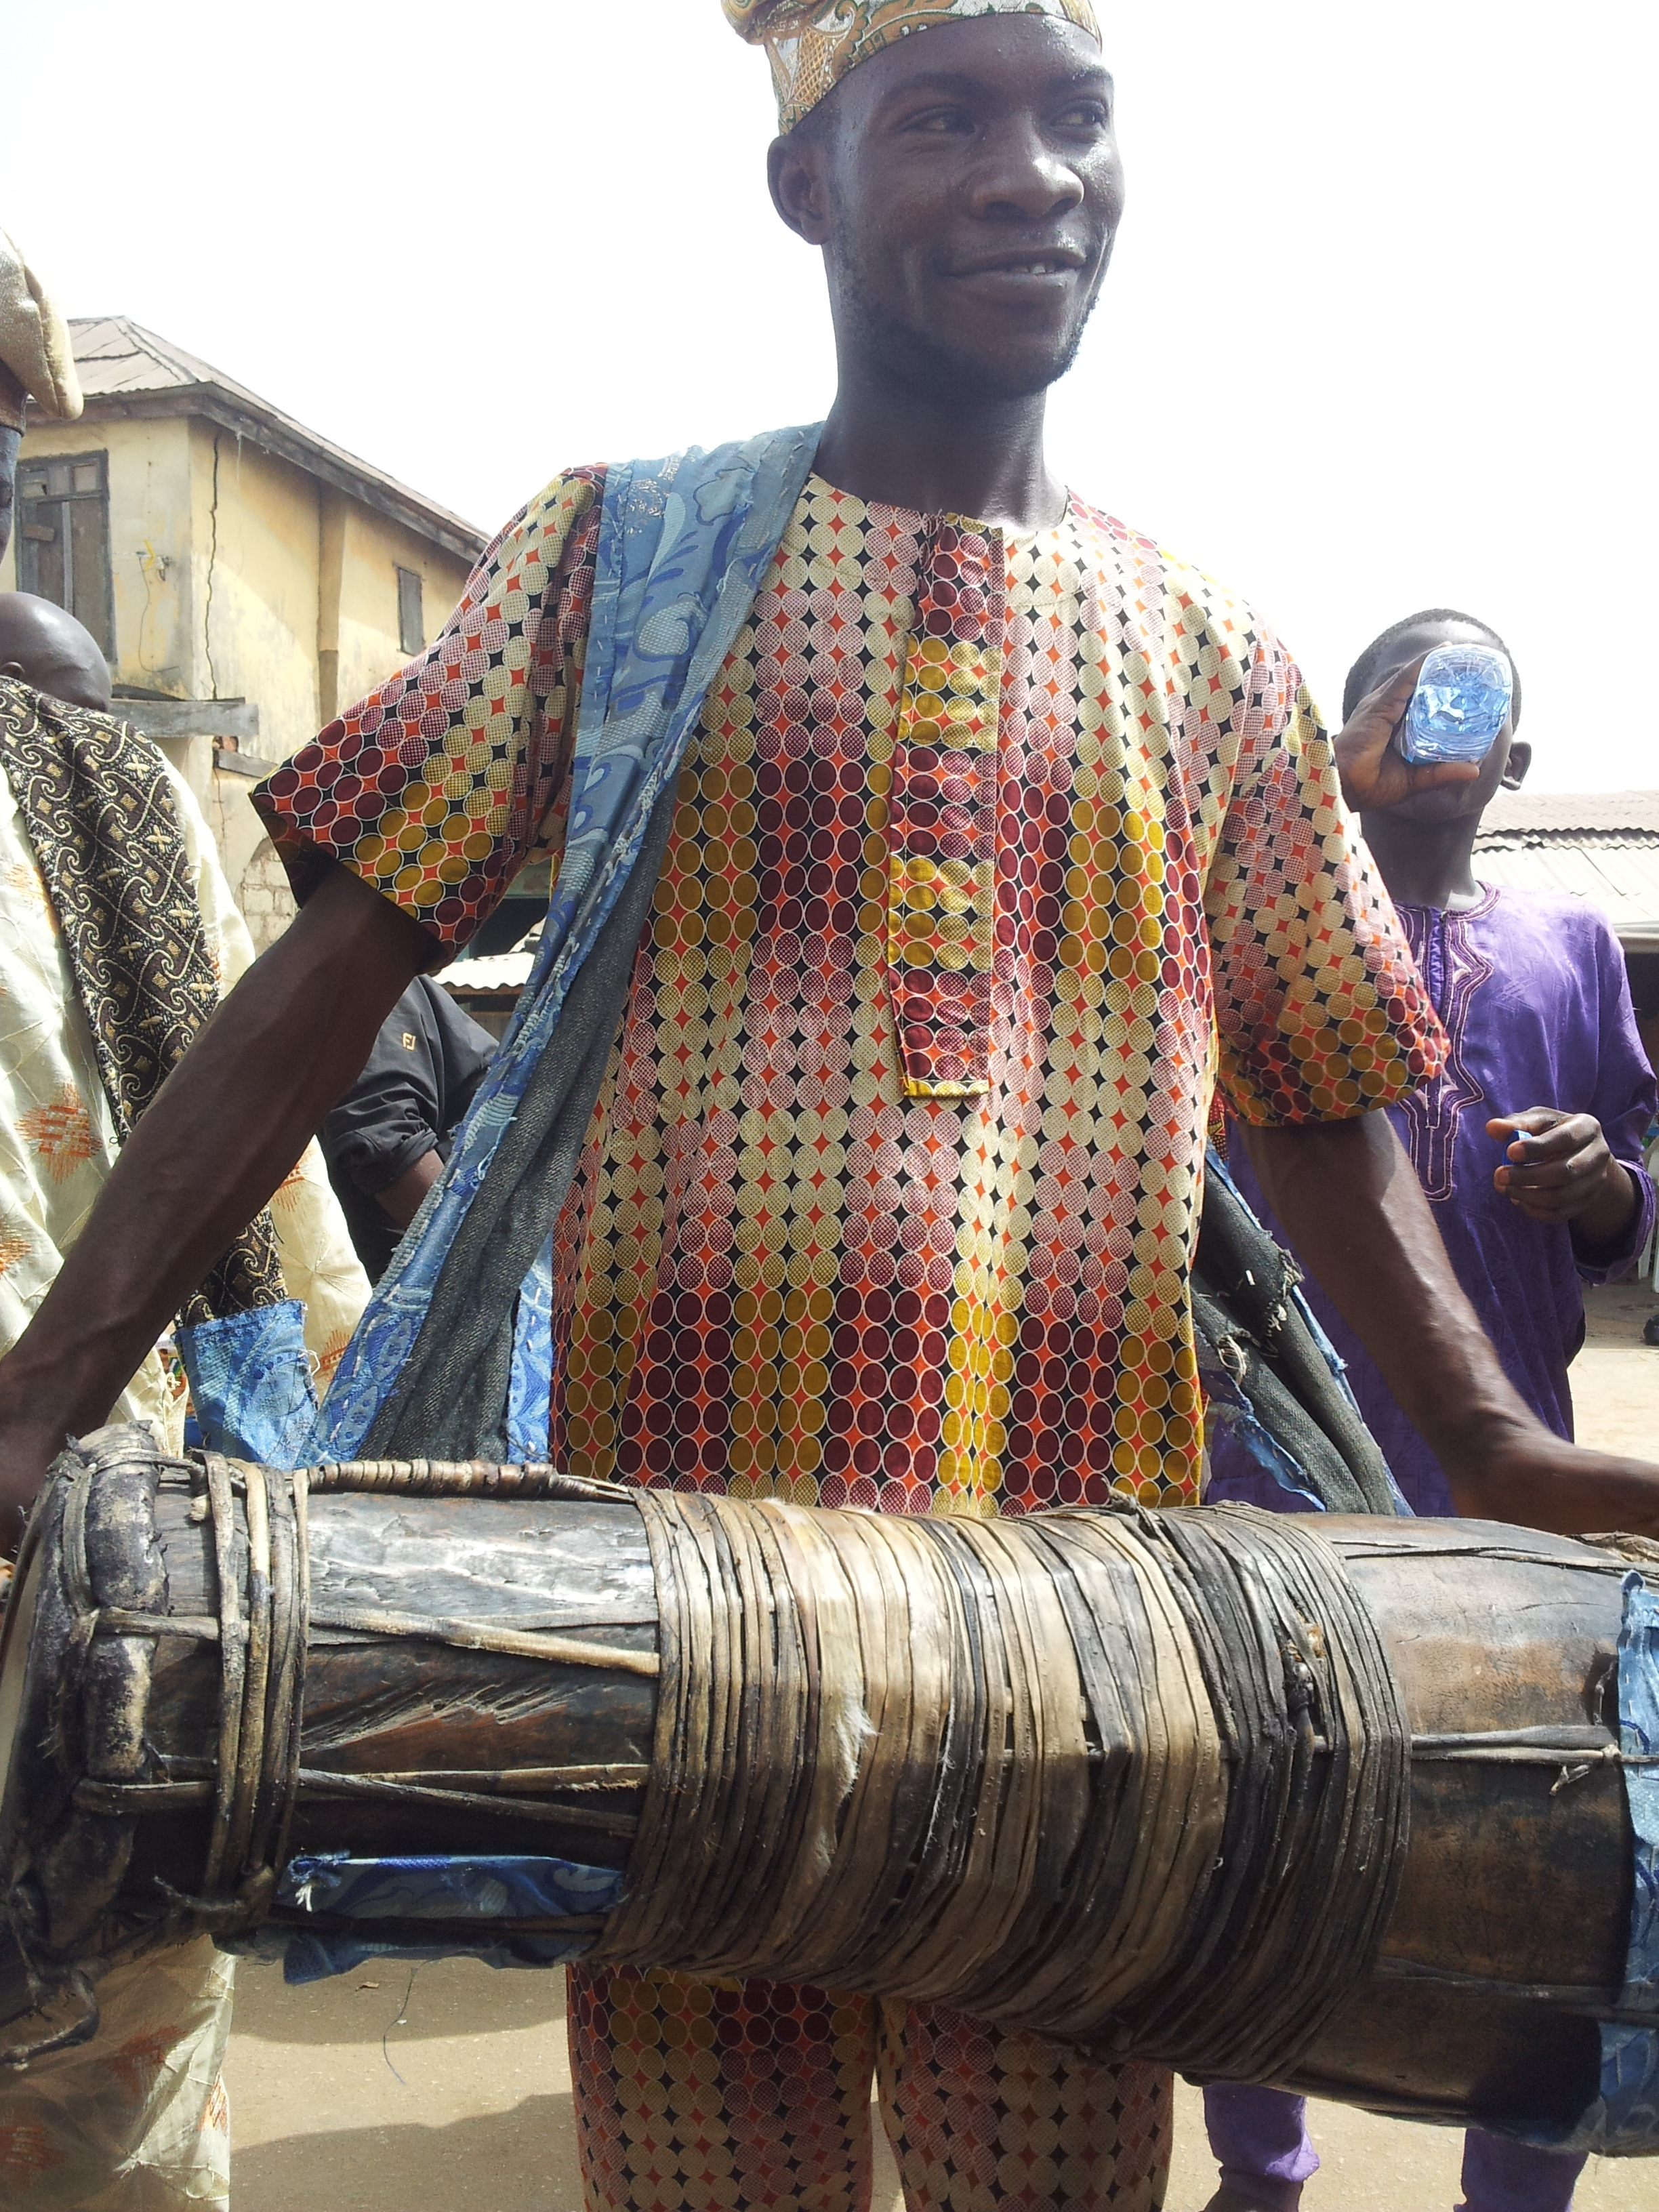 Here a bàtá player from Ile-Ife in Nigeria, 2016. Cuban consecrated bàtá drums look very similar, but differ in details. ©orishaimage.com